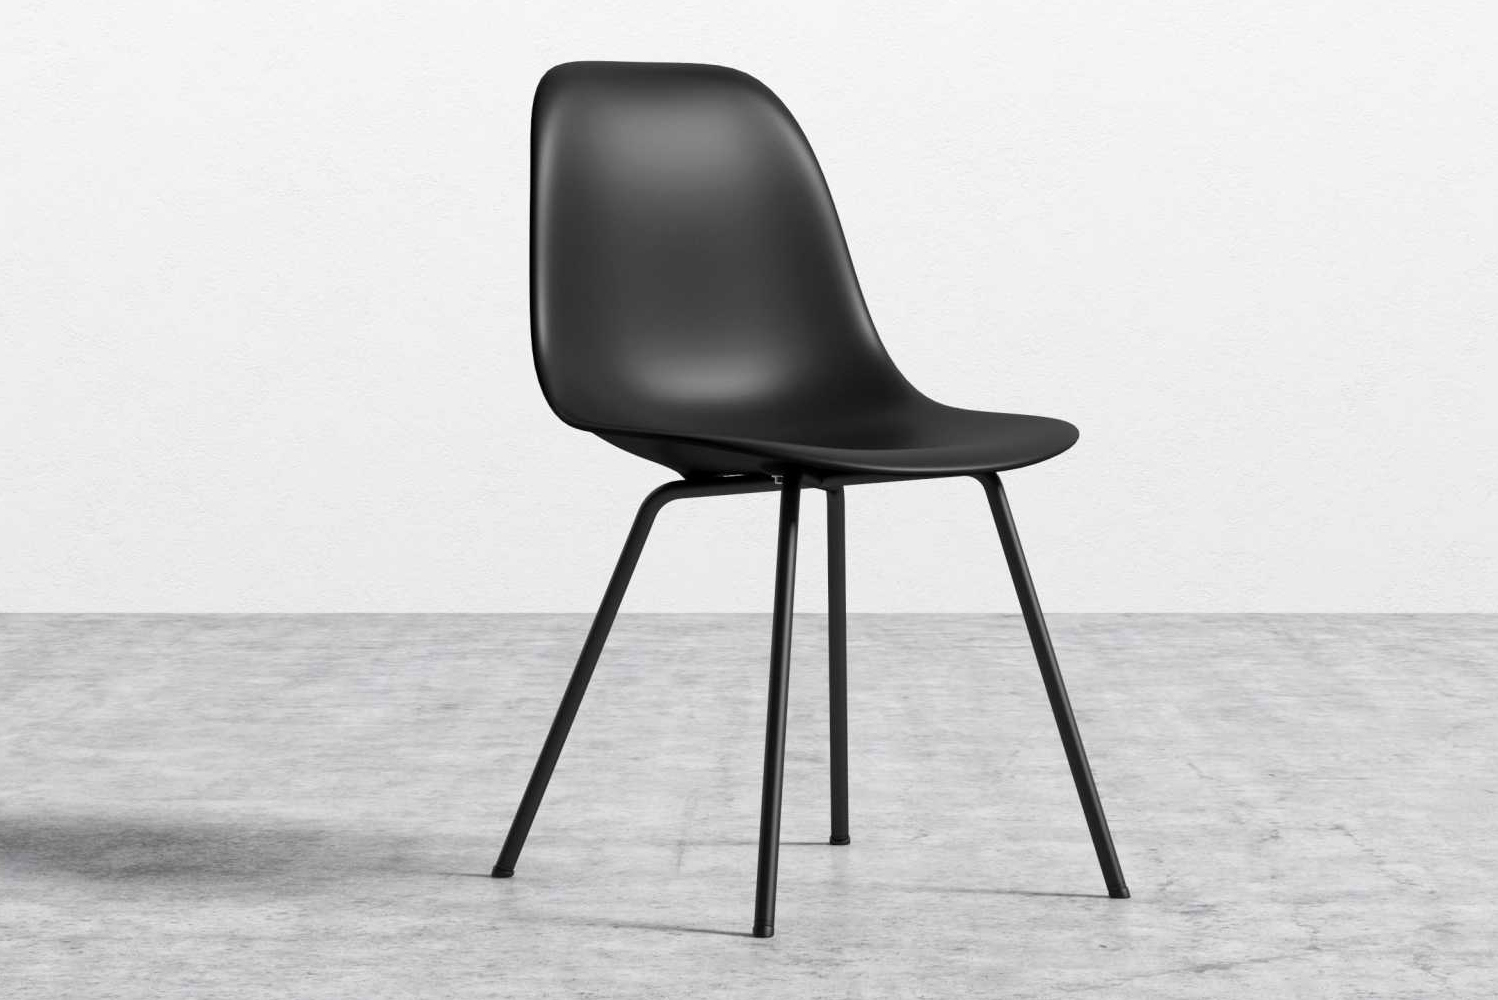 This modern adaptation contours to the body with its organically shaped polypropylene shell.